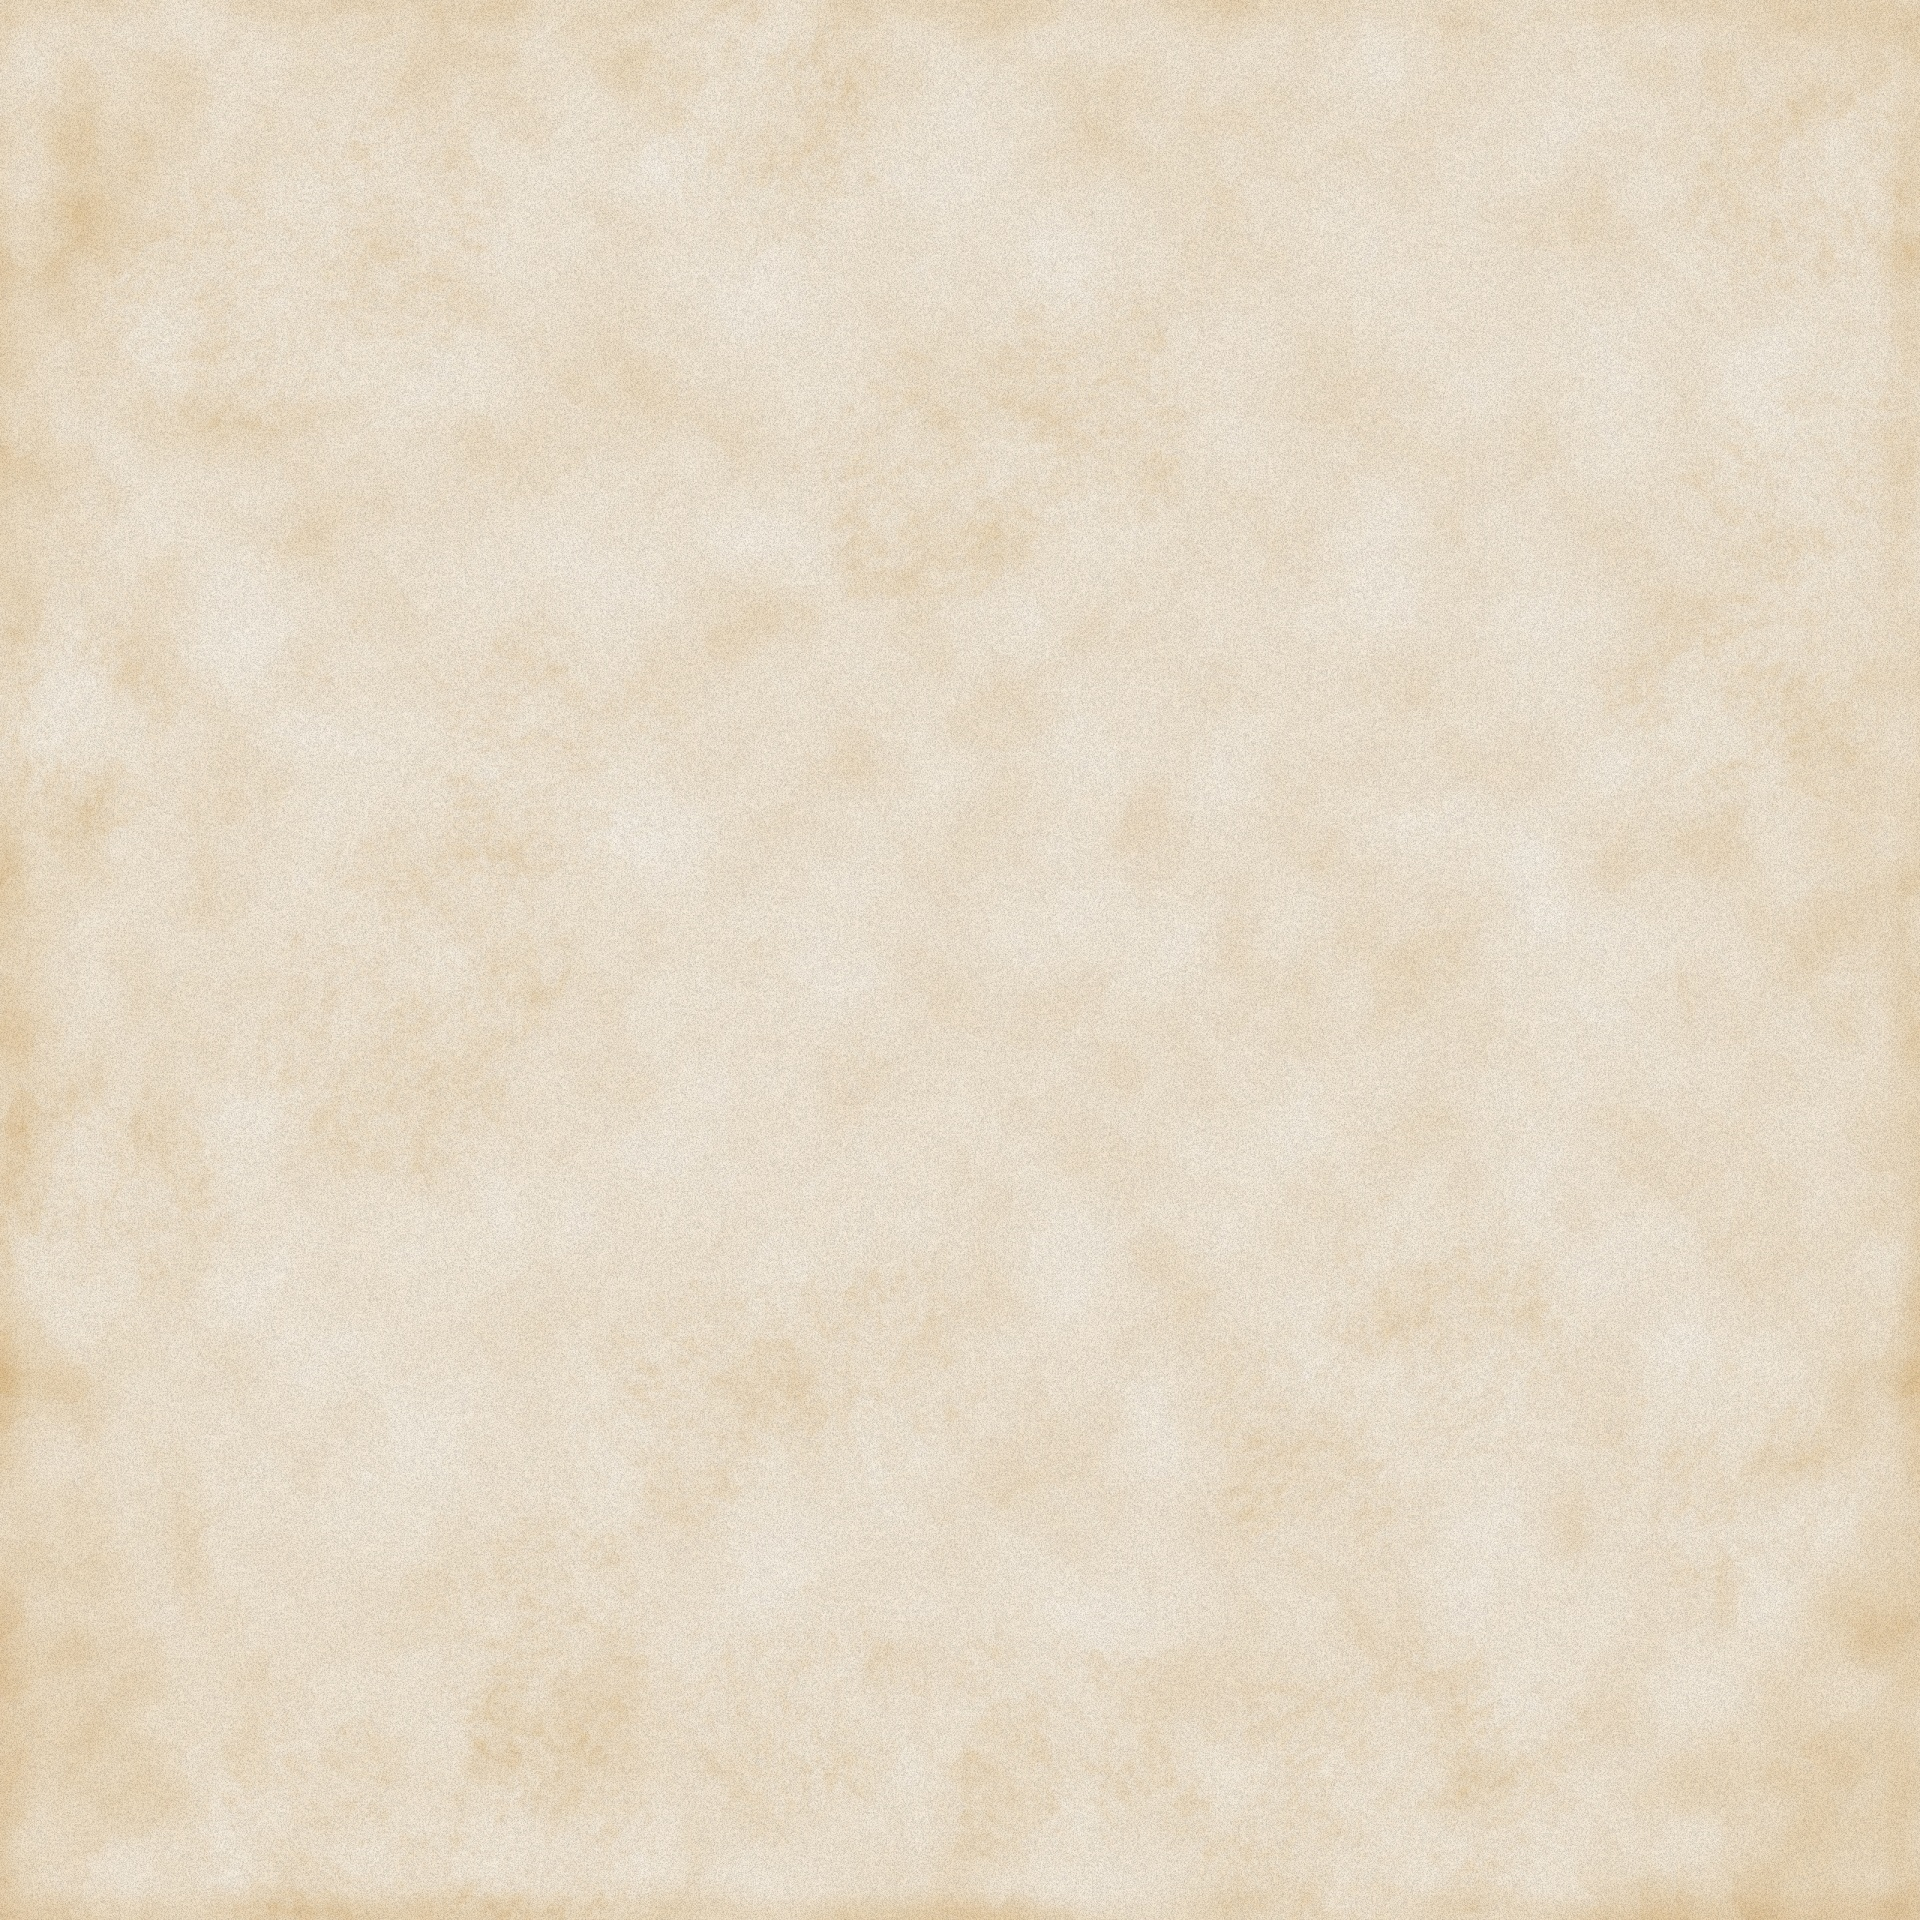 free photo  vintage paper background - blank  brown  grunge - free download